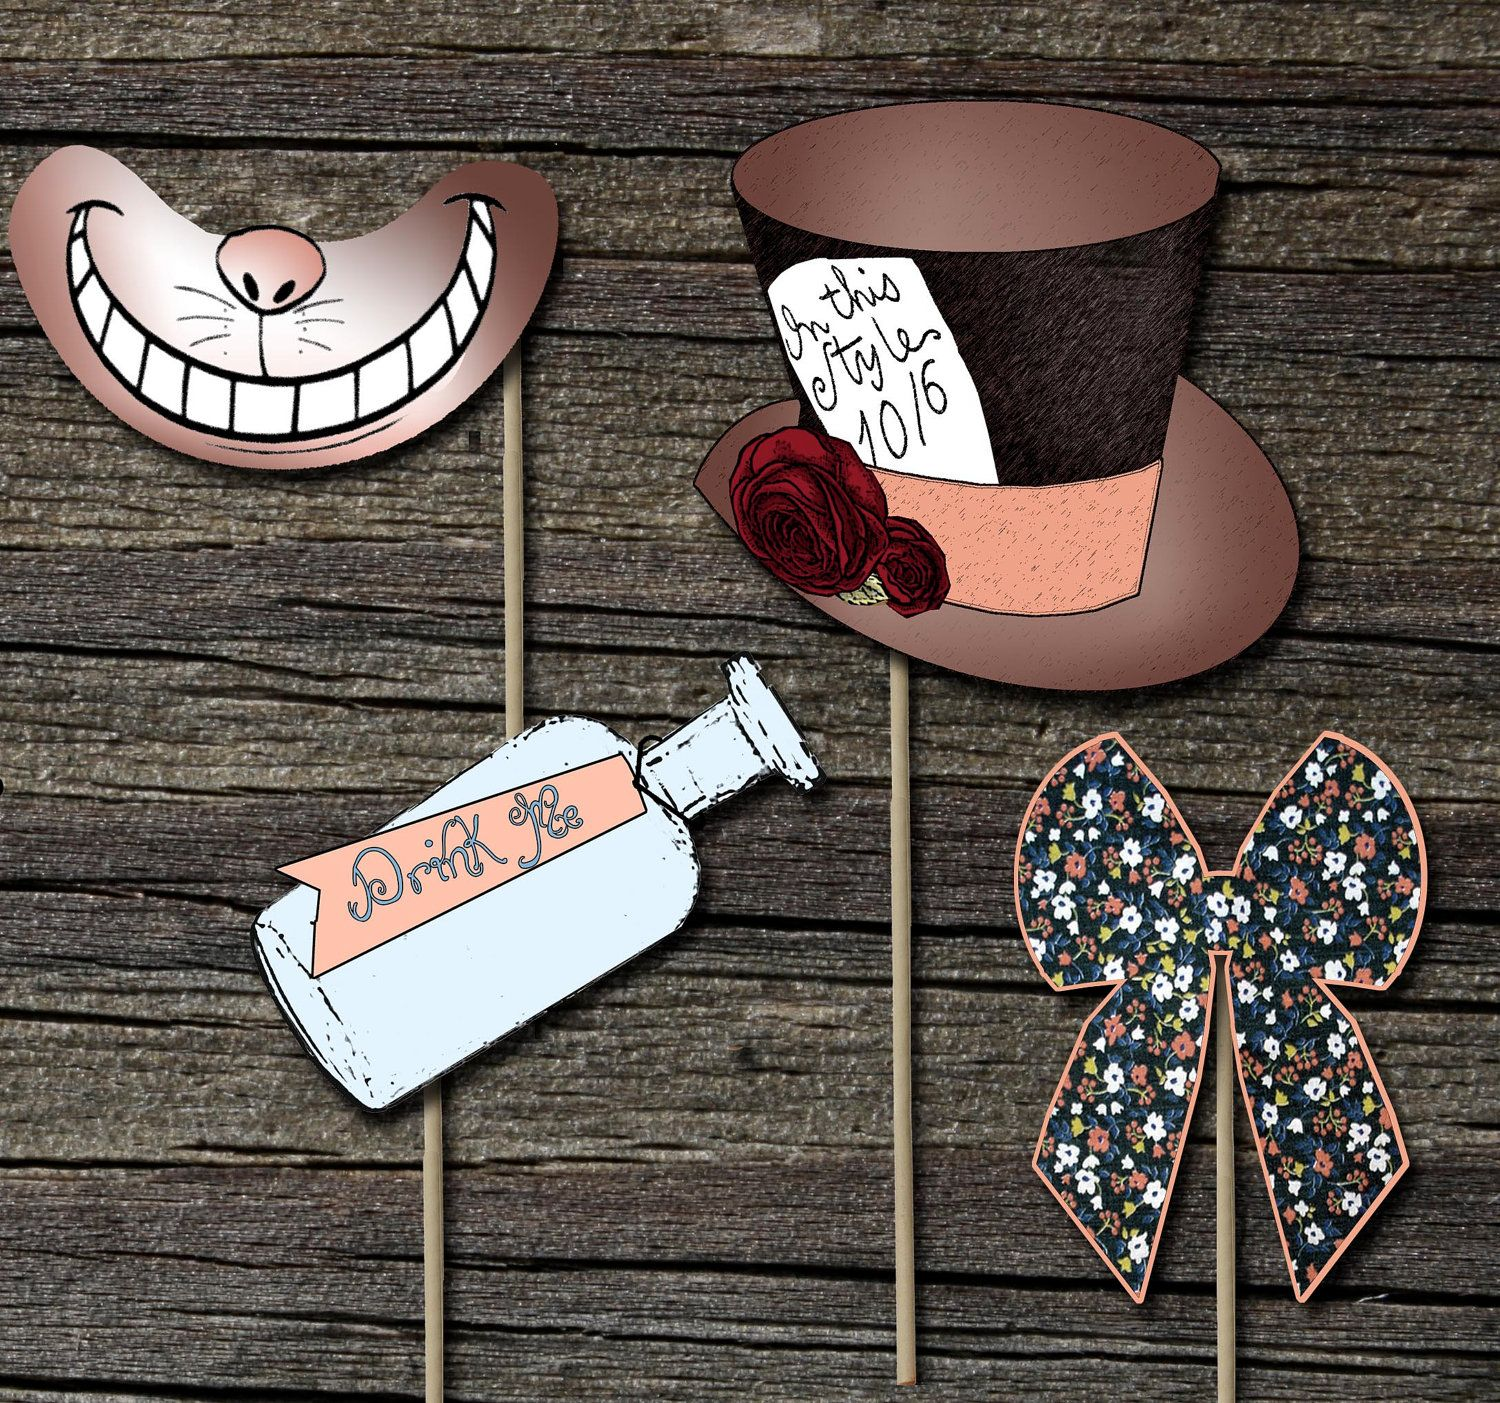 mad hatter teparty invitations pinterest%0A Alice in Wonderland Photo Props Set of   by theblueeggevents          Mad  Tea